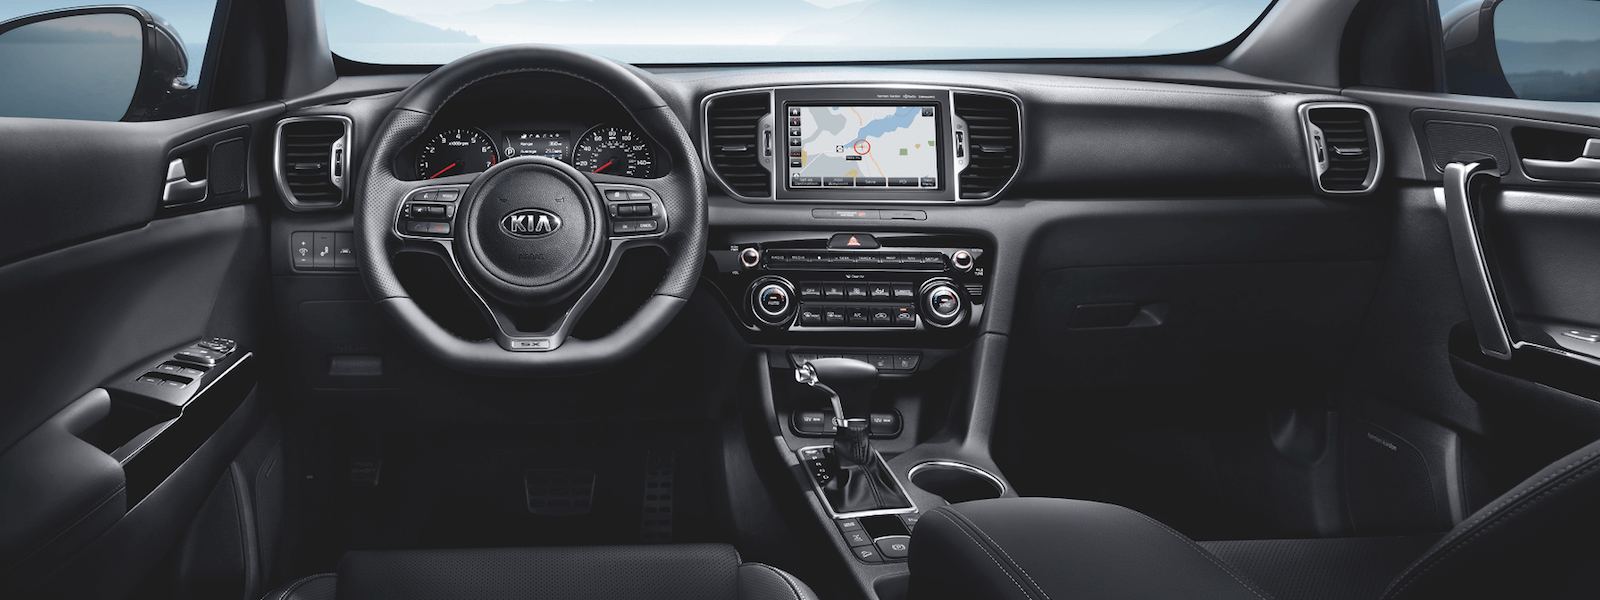 An all black interior shot of the 2019 Kia Sportage dashboard